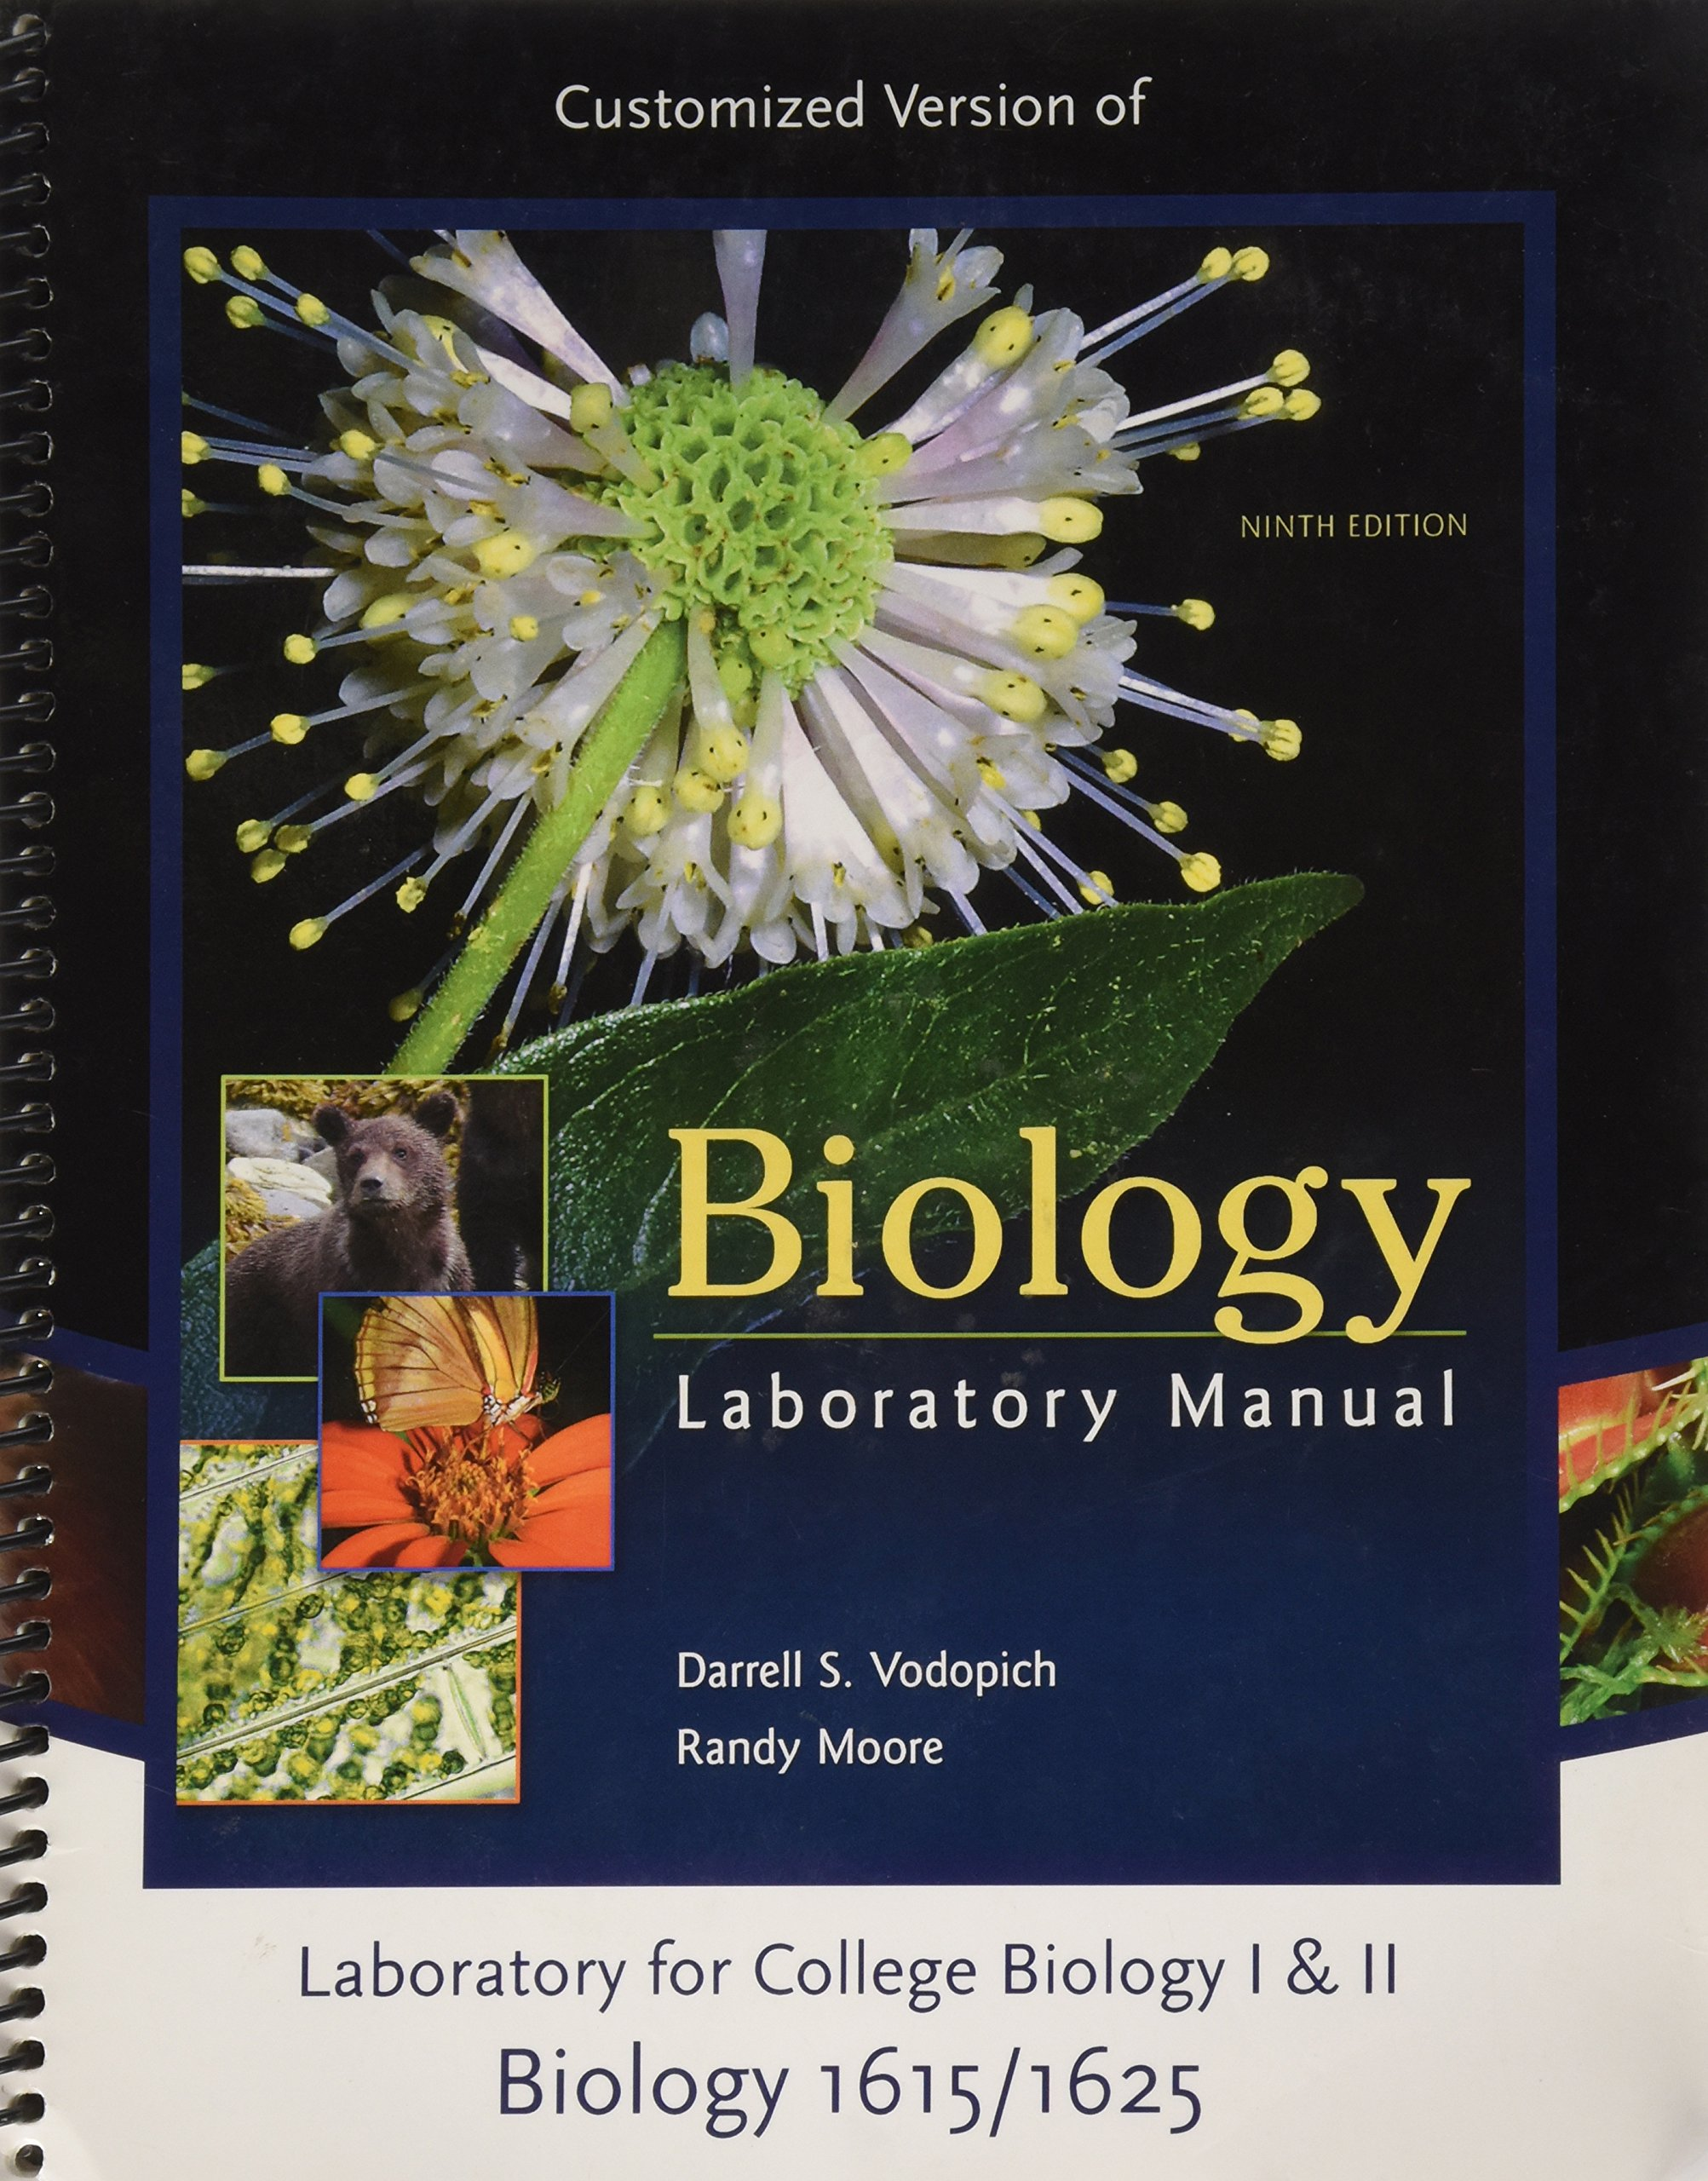 Biology Laboratory Manual (Customized Version) for College Biology 1 and 2 ( Biology 1615/1625 9th Edition): Darrell S. Vodopich: 9780077445607:  Amazon.com: ...